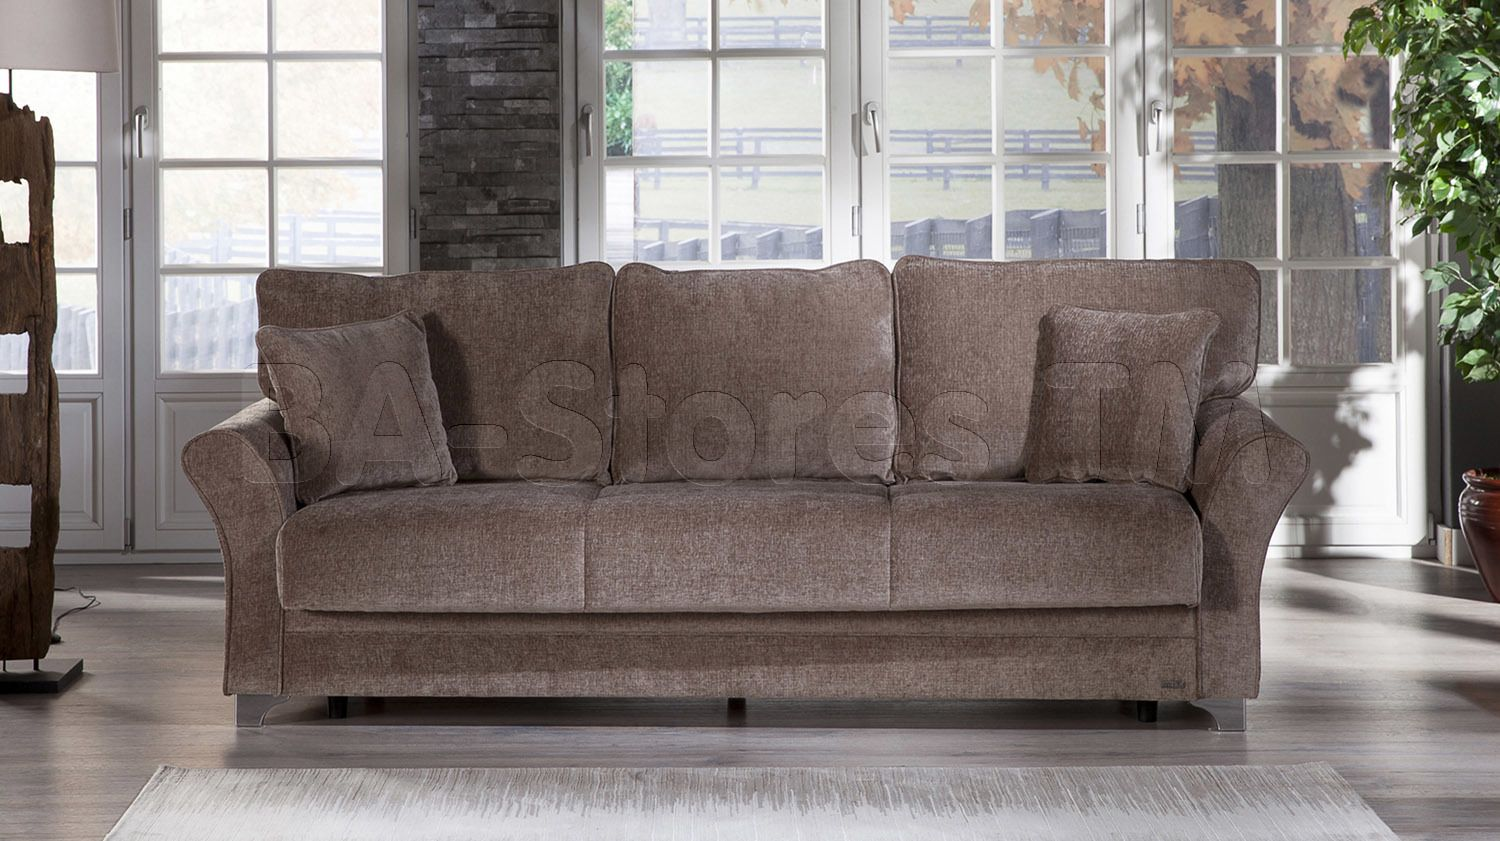 padova sofa bed in jennefer vizon by istikbal 1OWYH1X8